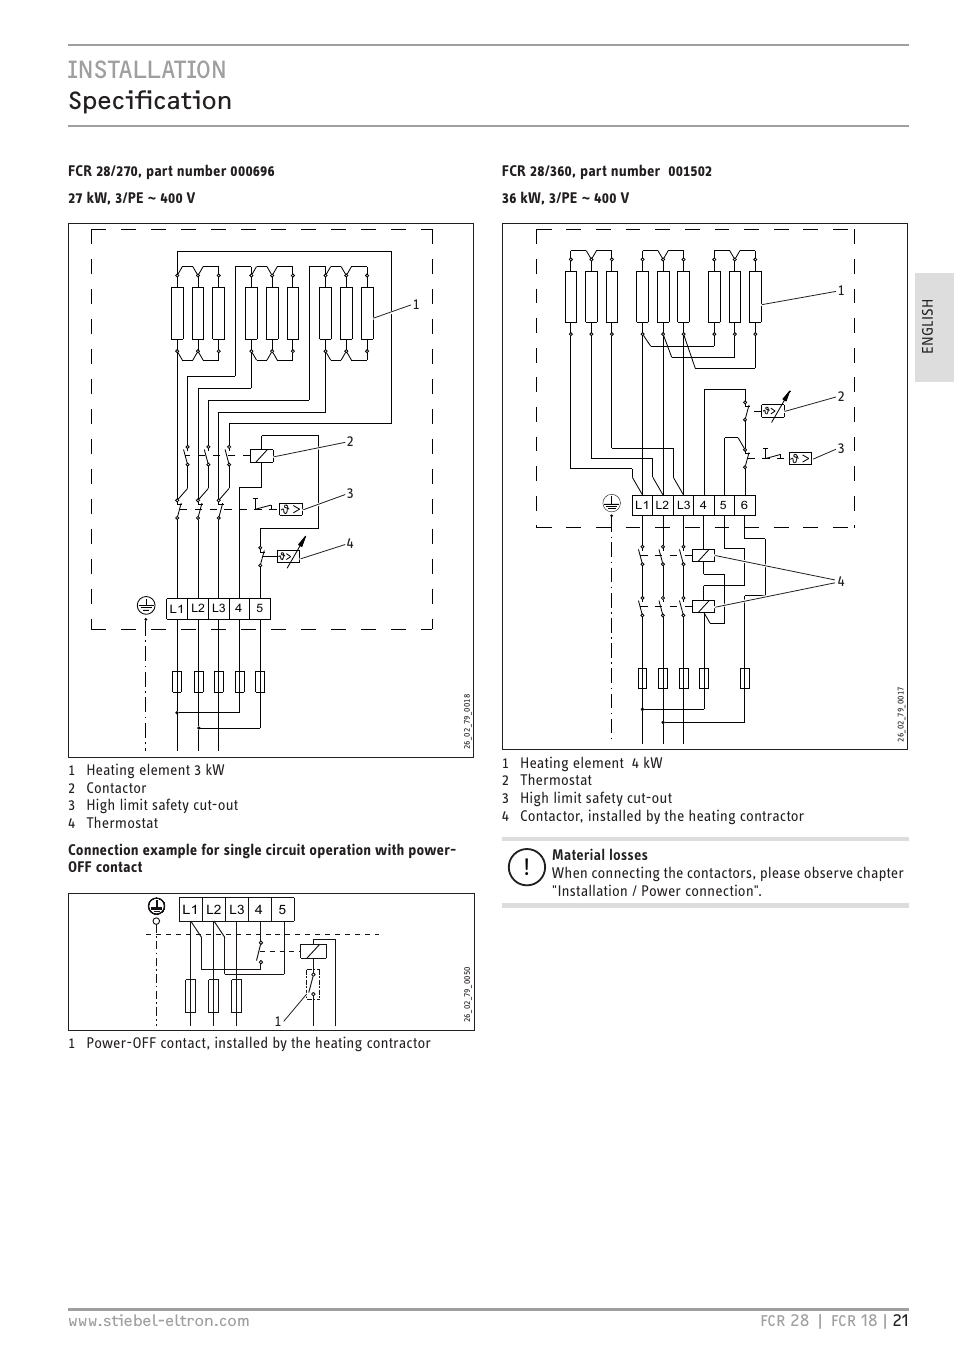 Outstanding Case 360 Wiring Diagrams Gift - Electrical Circuit ... on case engine, gmc truck transfer case diagram, case flow diagram, case parts diagram, bobcat 310 parts diagram, case transmission diagram, case fan diagram, kubota hydraulics diagram, case pump diagram, all wheel drive transfer case diagram,